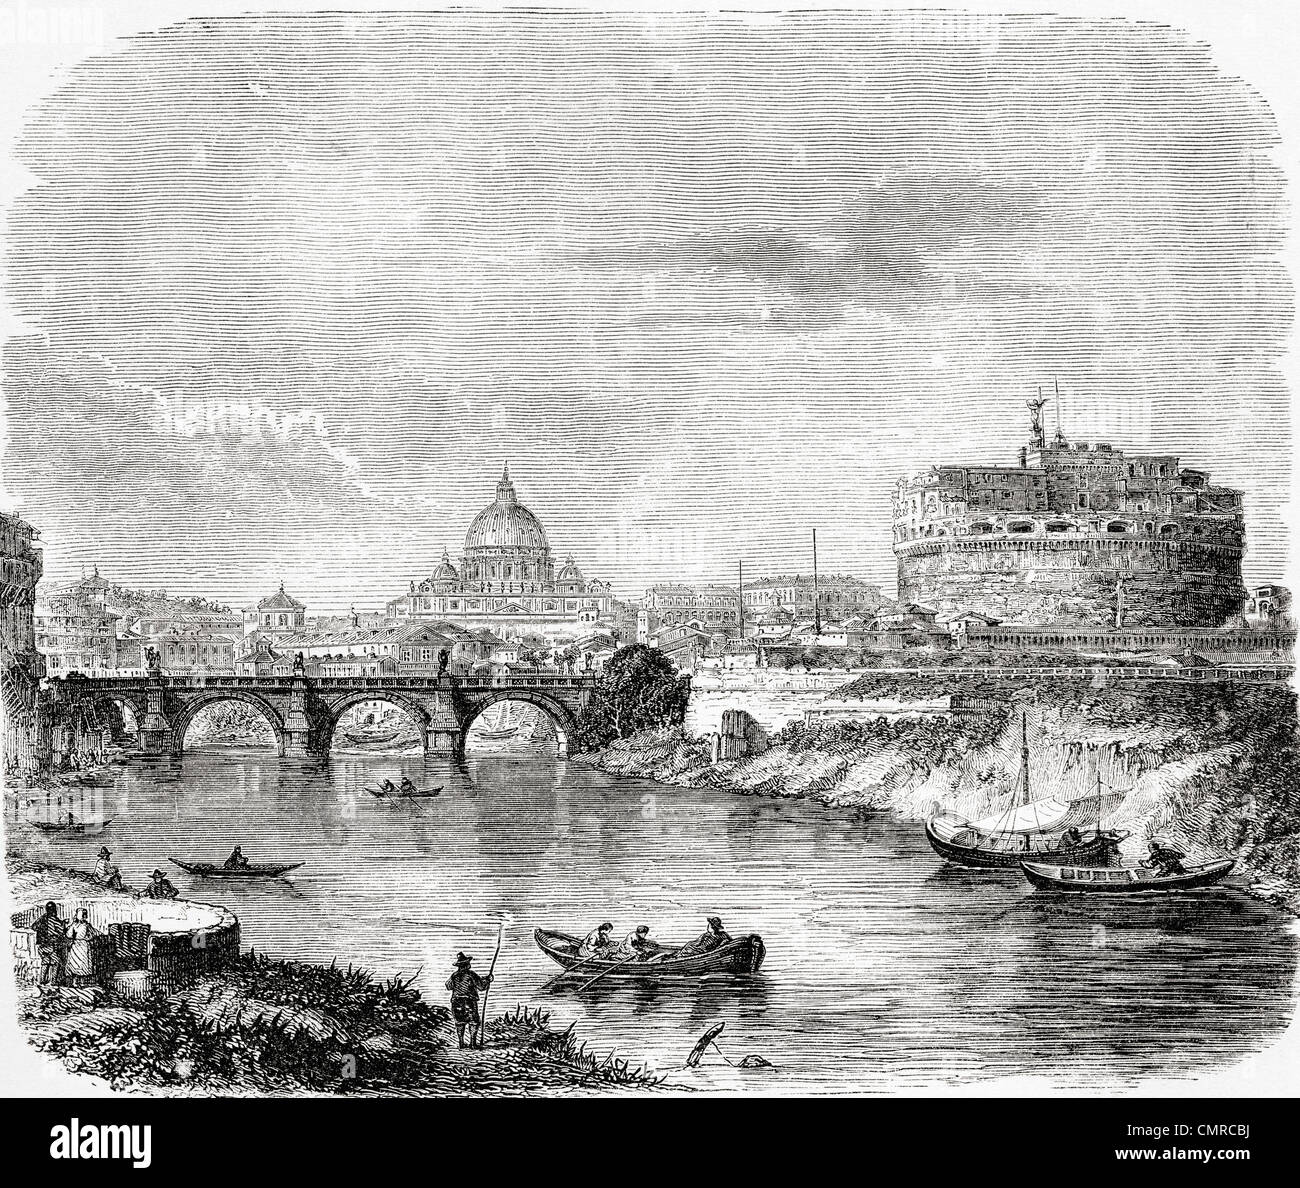 St. Peters with the bridge and Castel Sant'Angelo, Rome, Italy in the late 19th century. - Stock Image